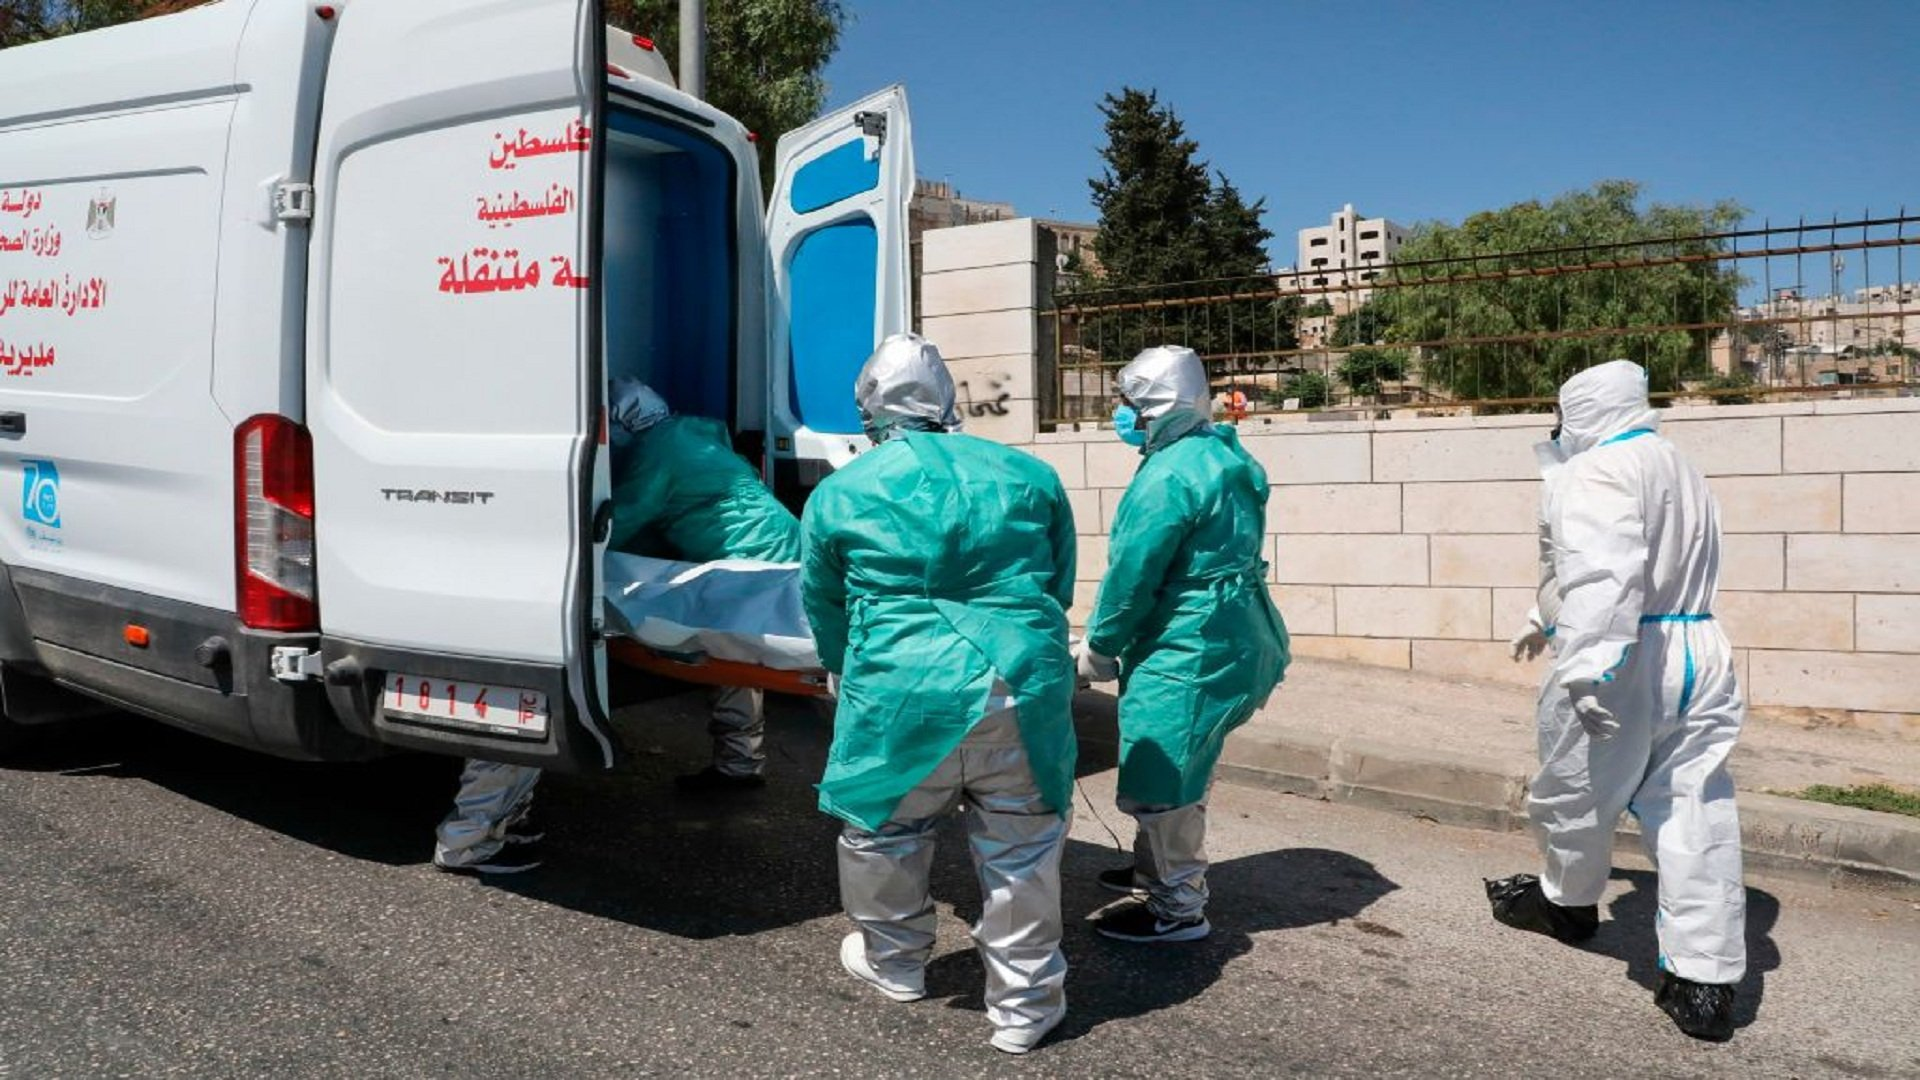 Health Official: COVID-19 Epidemiological Situation in Palestine is Getting Worse